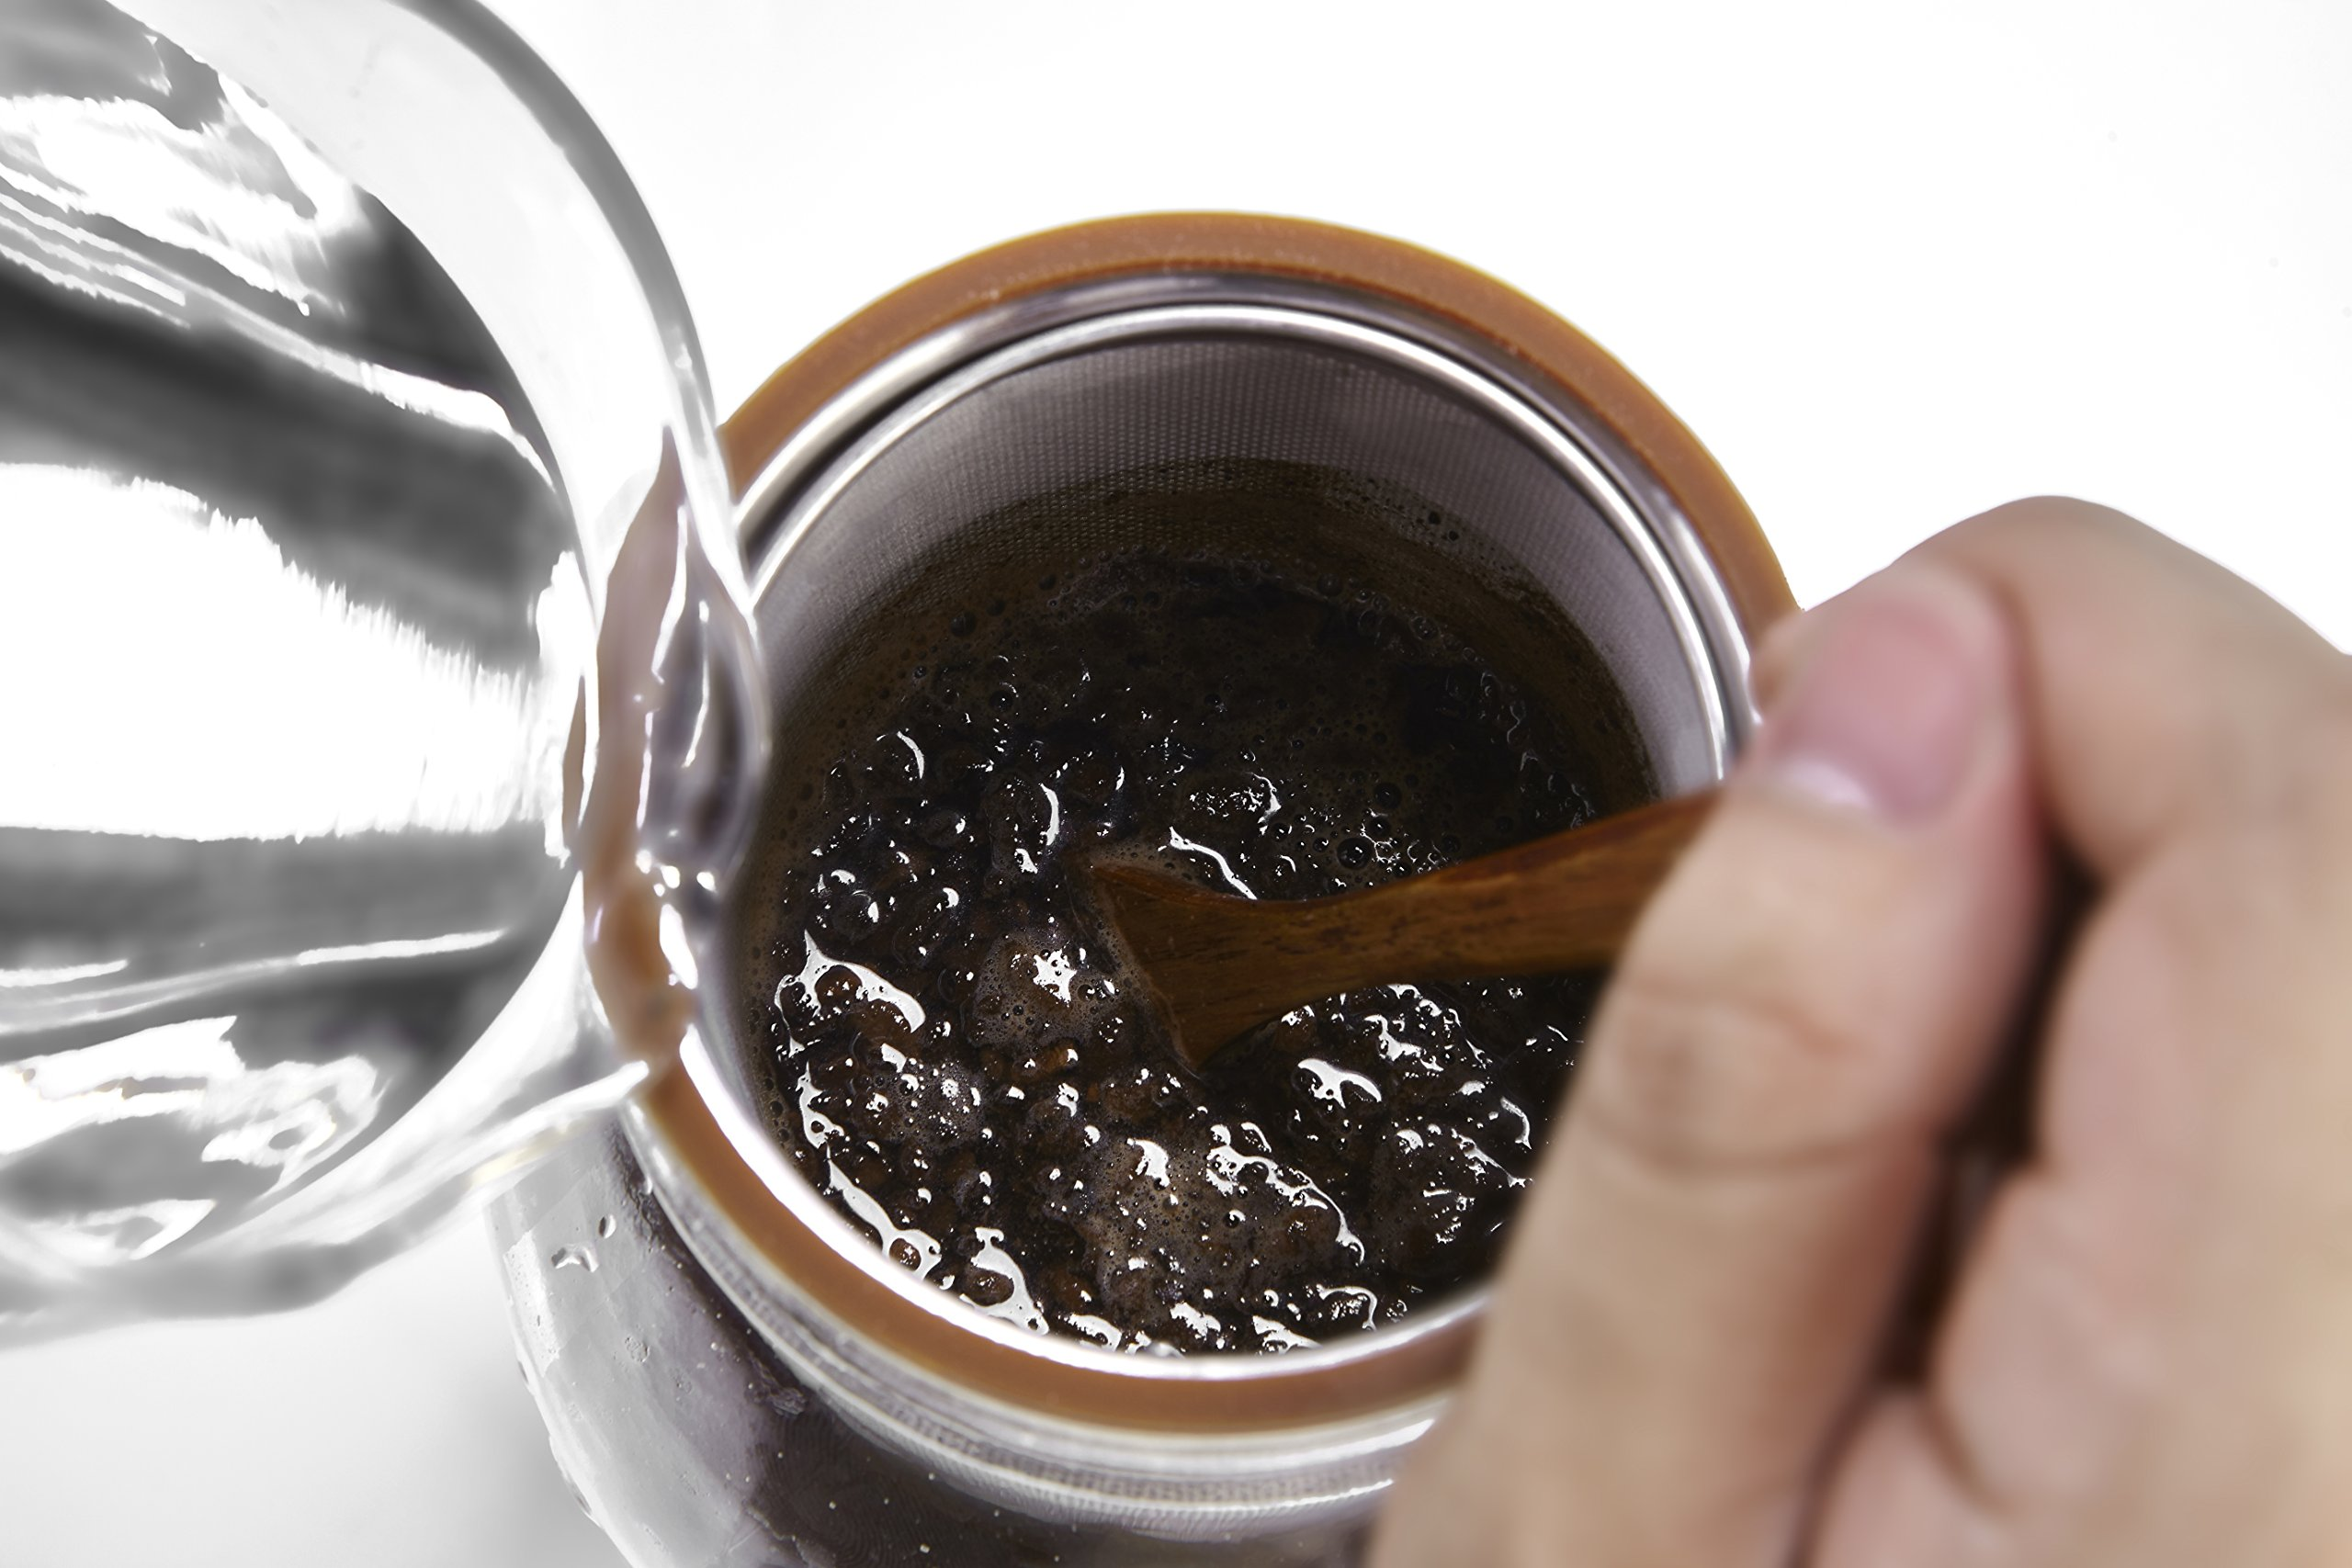 Ultra-Fine Mesh Cold Brew Coffee Filter to Use with 2-Quart Mason Jar by Geesta (Image #5)